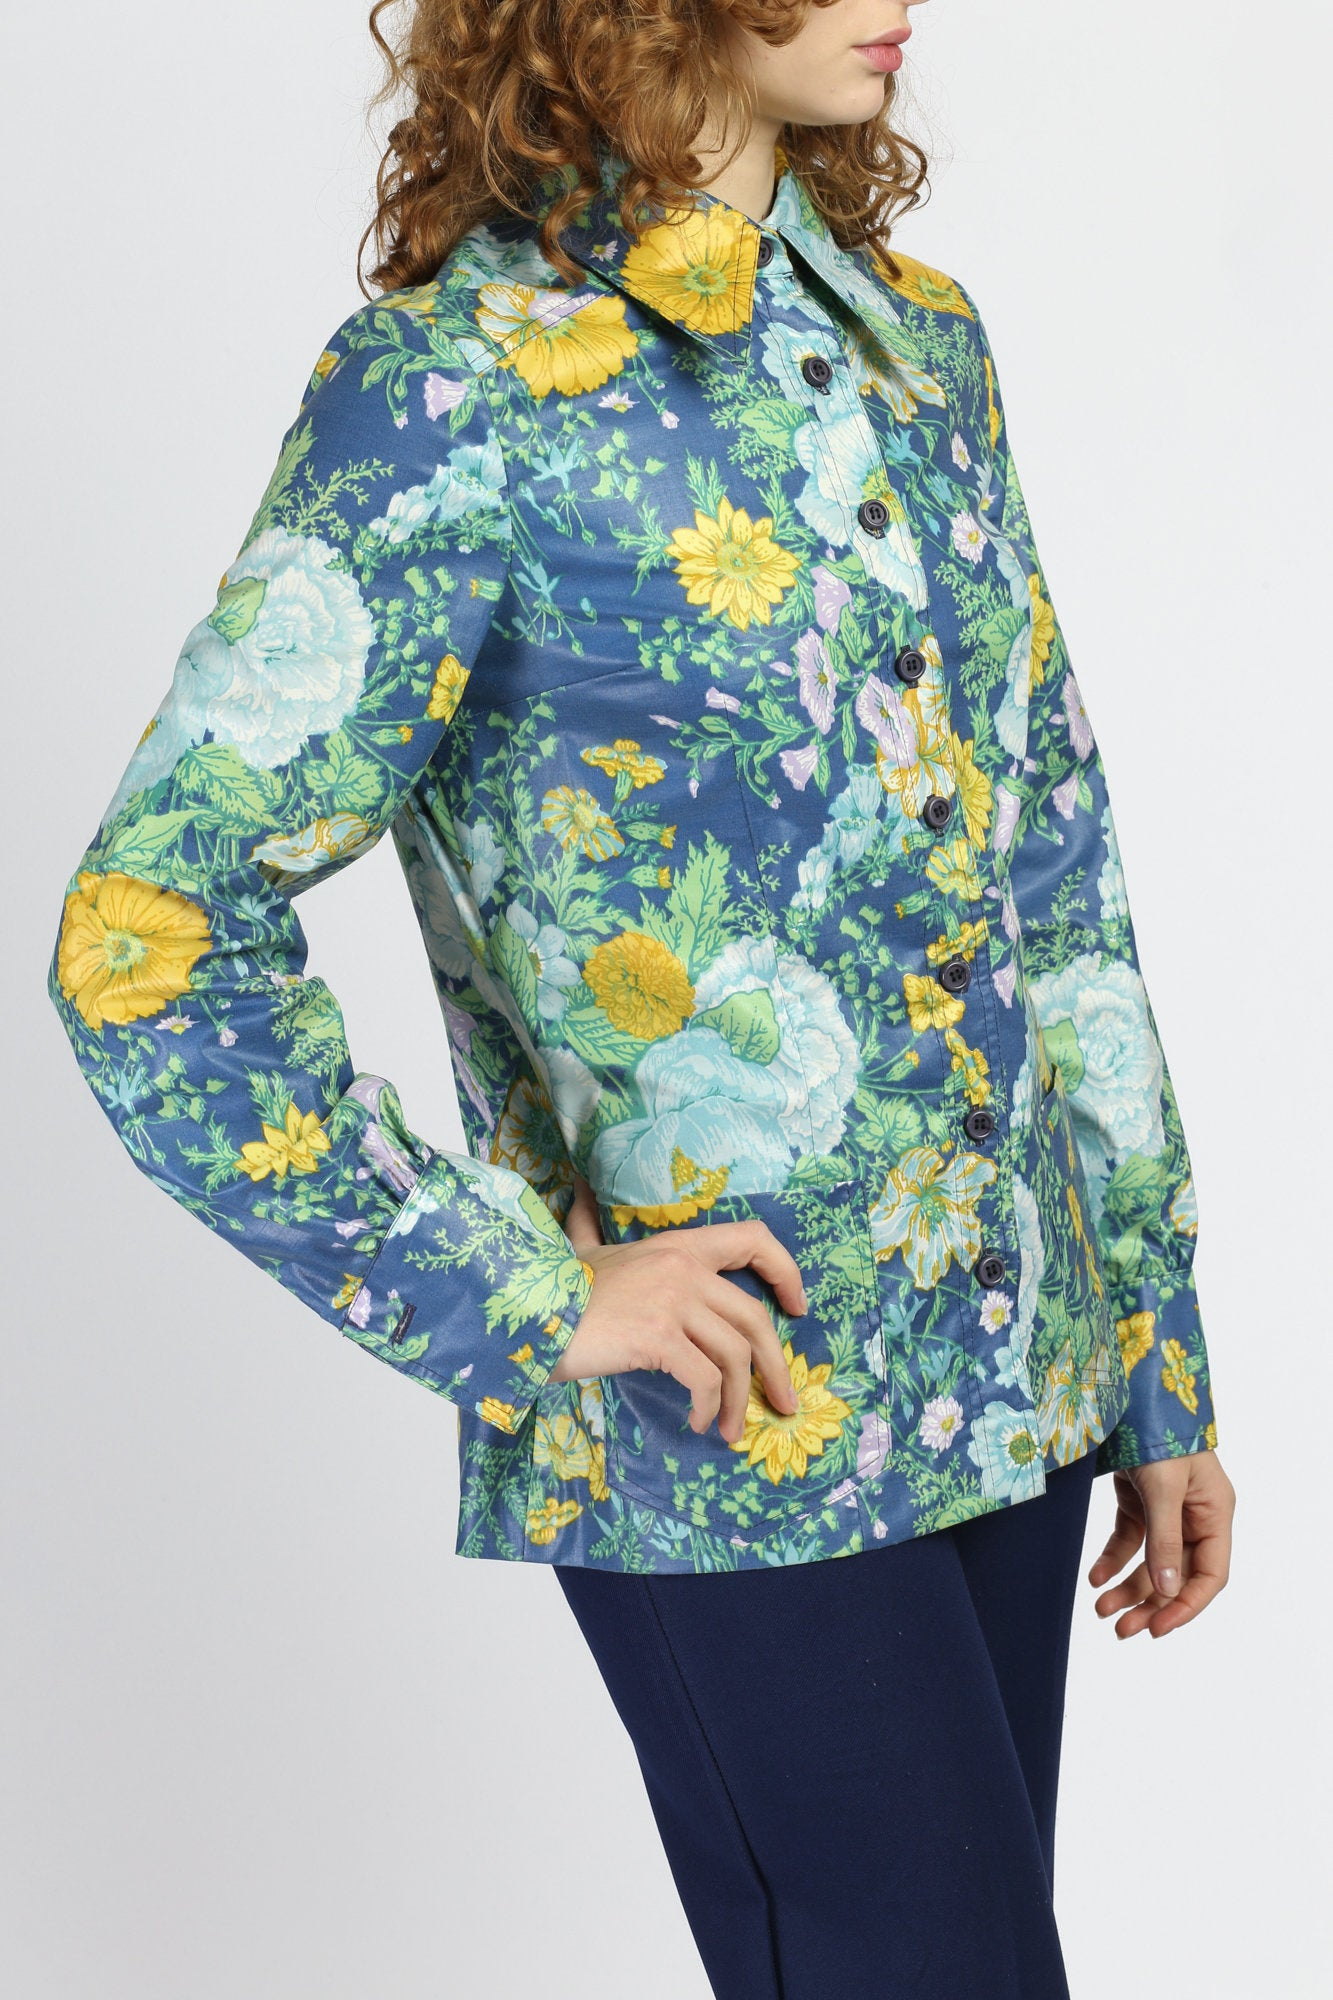 60s Addenda Blue Floral Cuffed Blouse - Medium